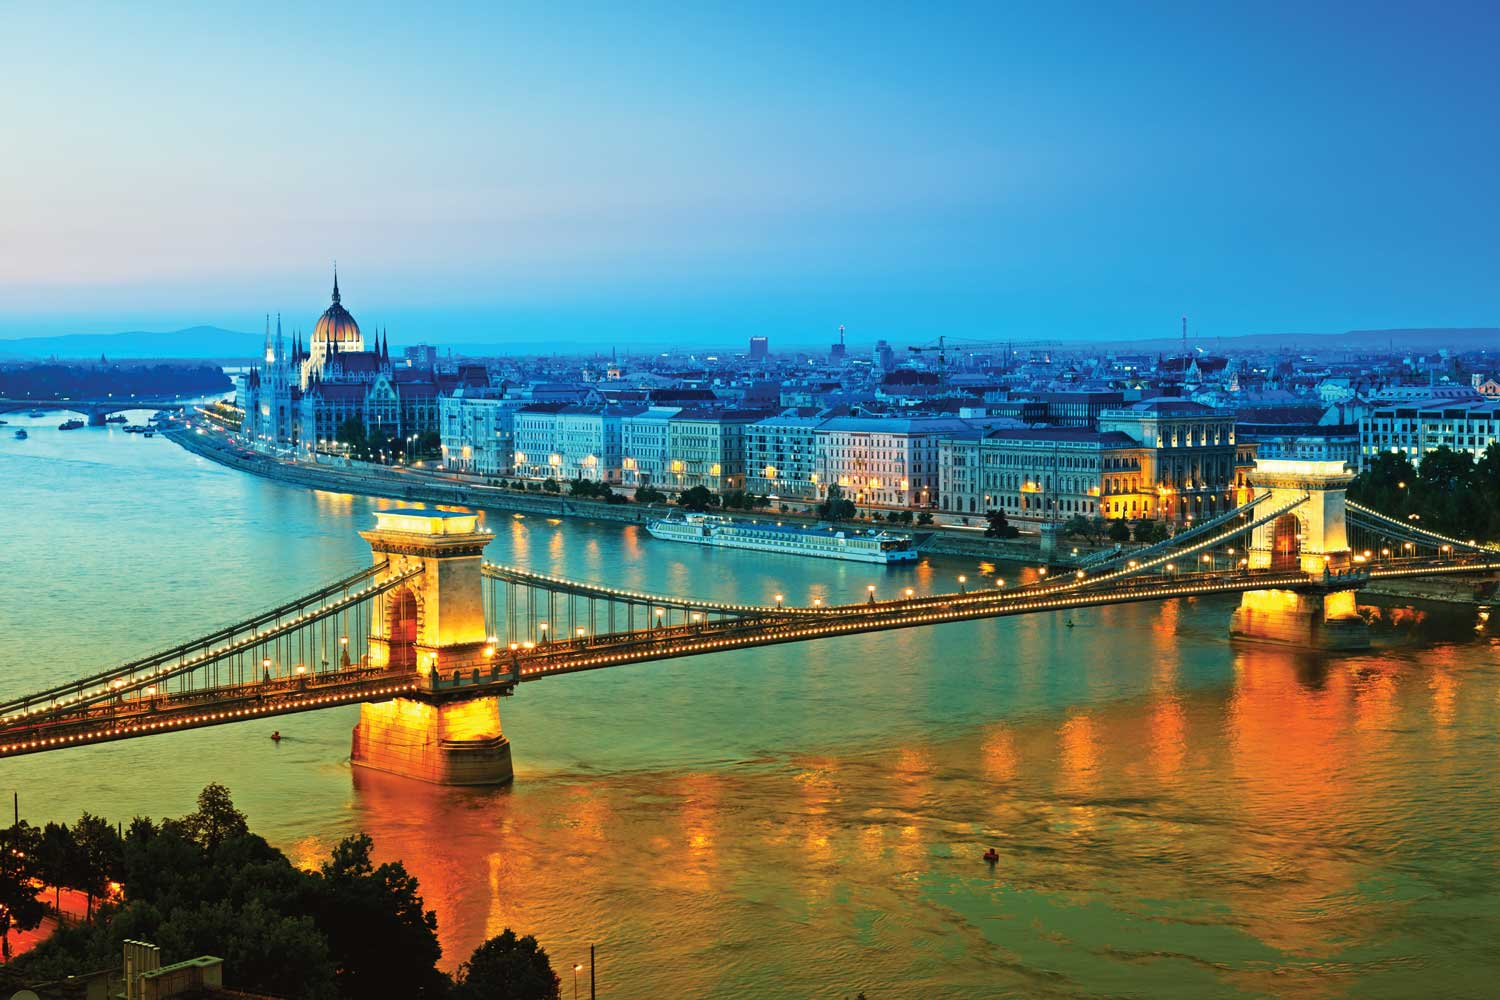 http://extranet.jetlinetravel.info/express-images/express_BudapestCityBreak_3.jpg